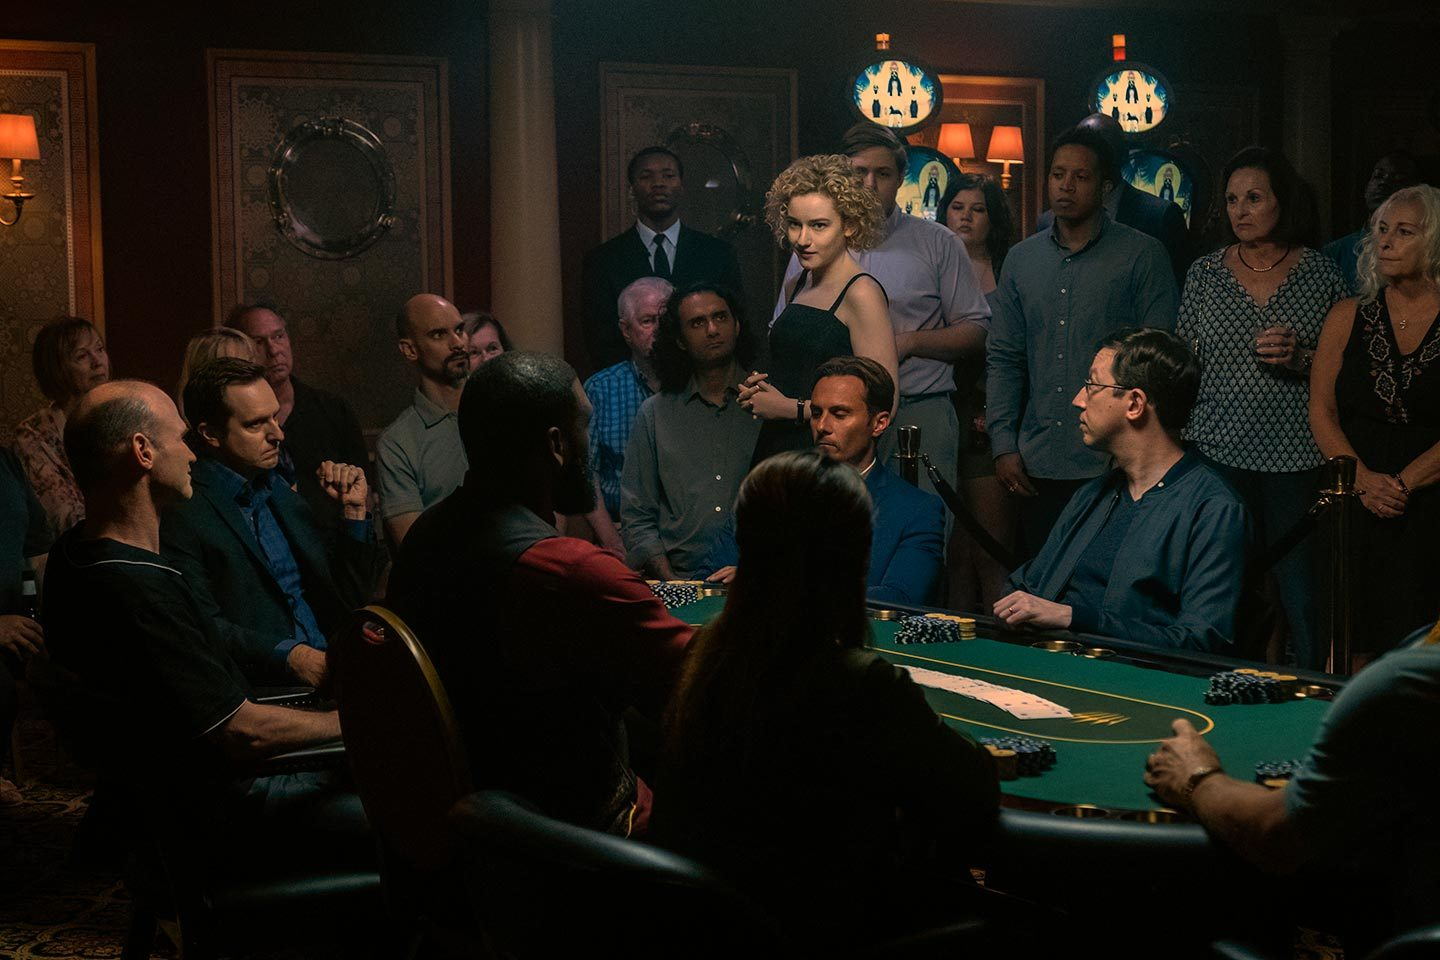 Photo of El Poker llegó a la serie Ozark de Netflix